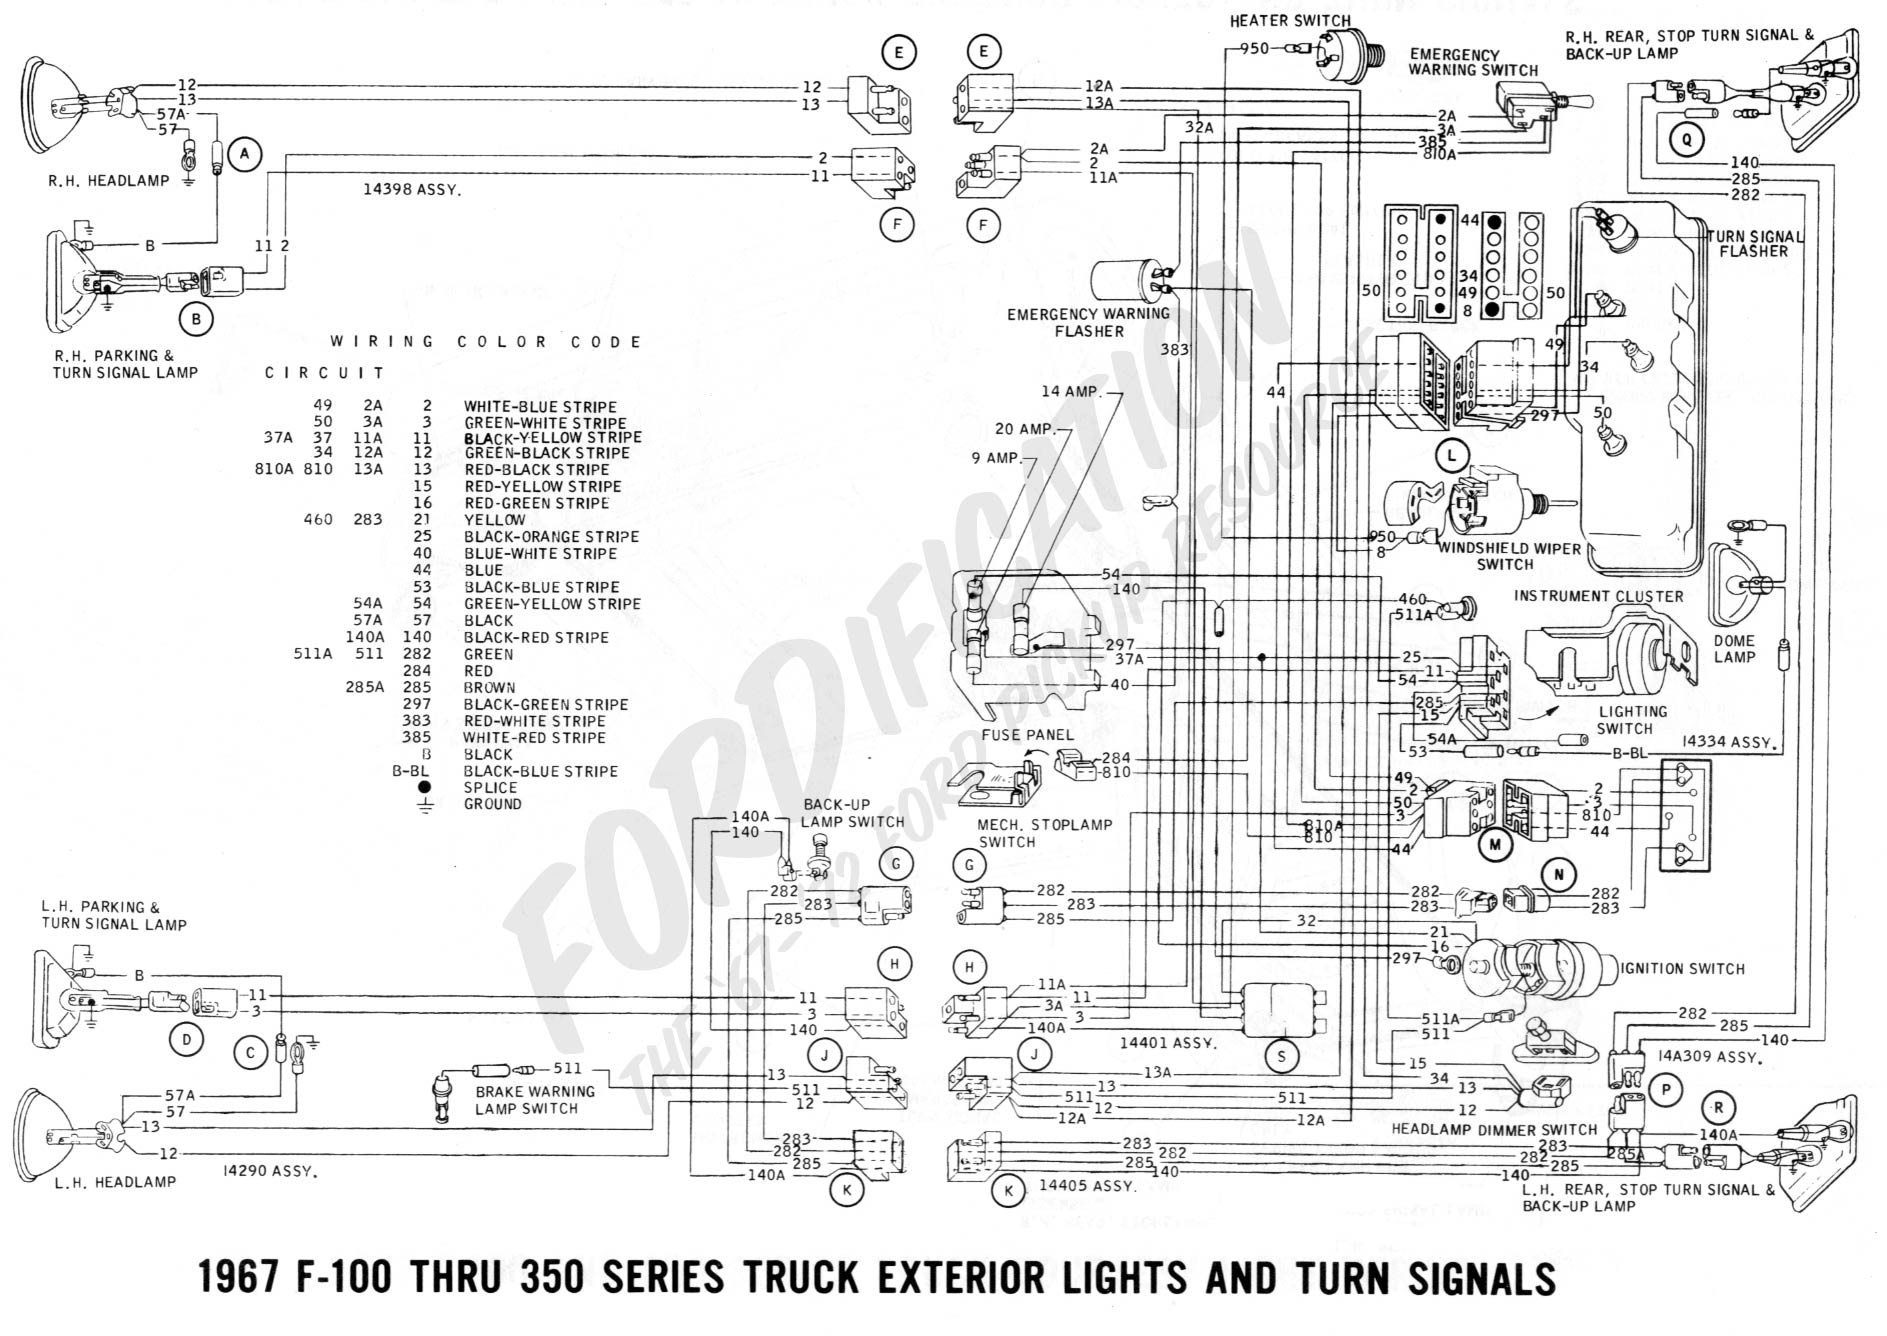 72 ford f100 dash wiring diagram ge dryer timer switch 1958 harness schematic blog 1970